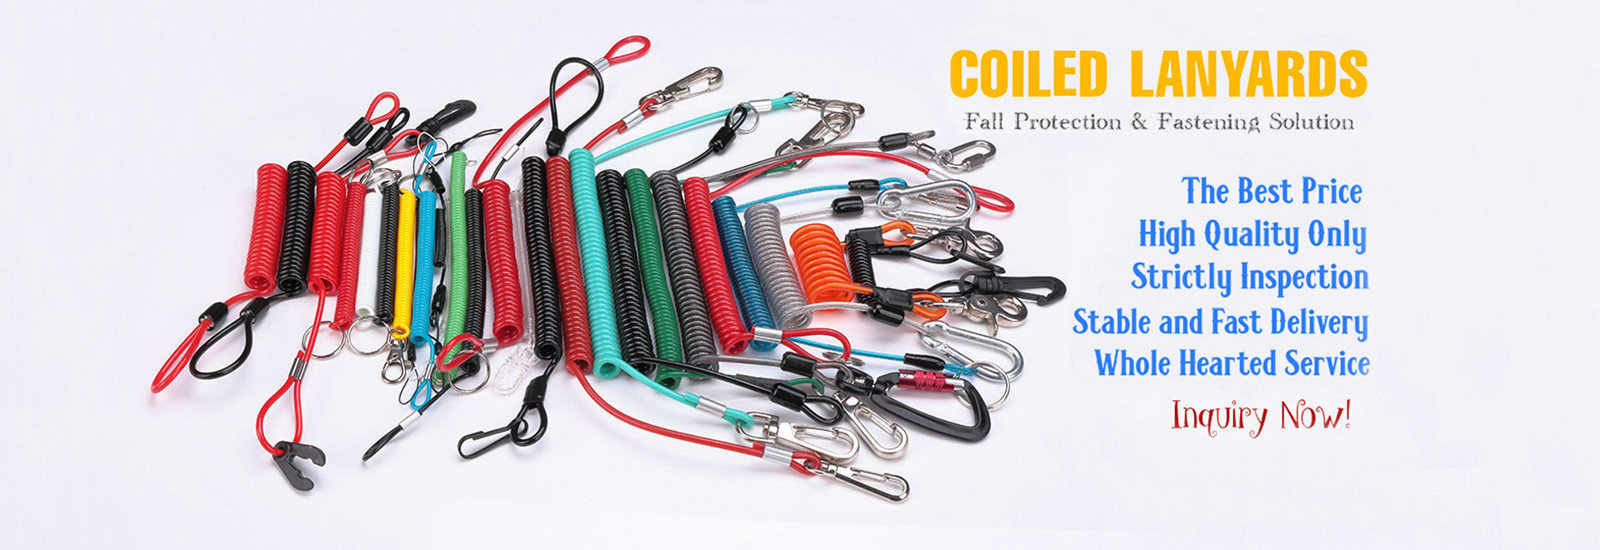 China best Plastic Coil Lanyard on sales